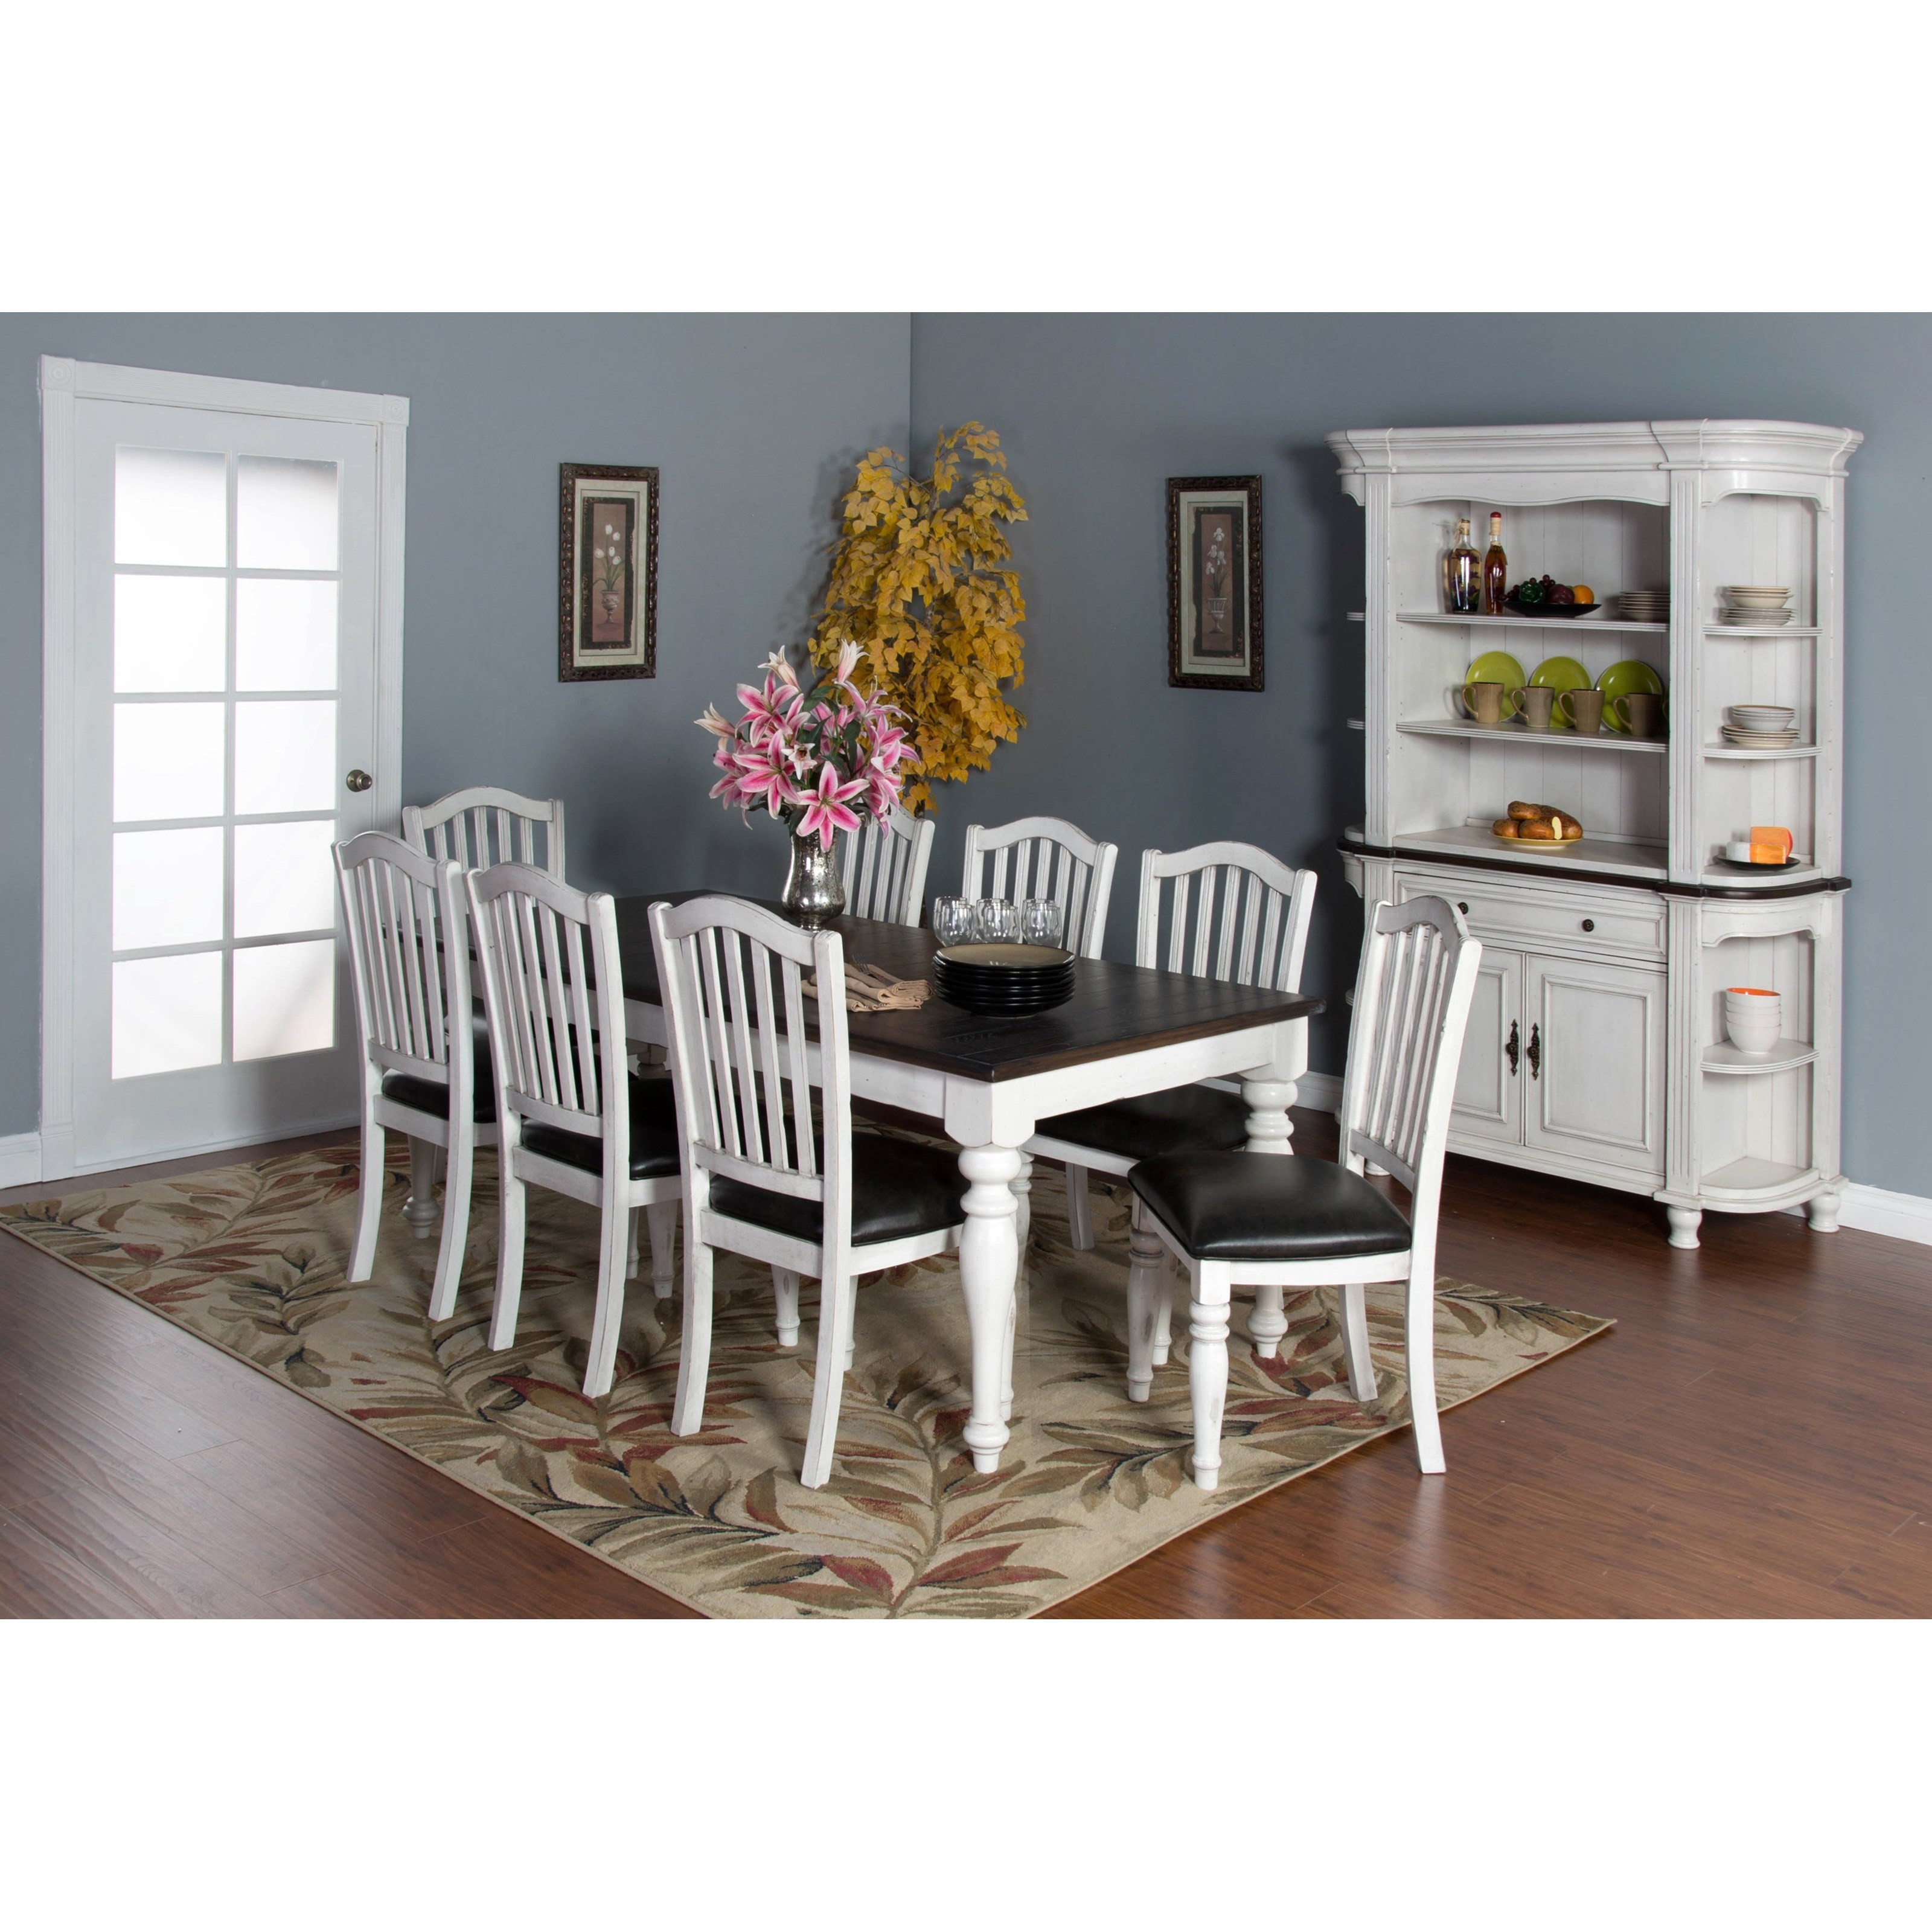 Sunny Designs Bourbon Country Casual Dining Room Group - Item Number: FC Dining Room Group 4